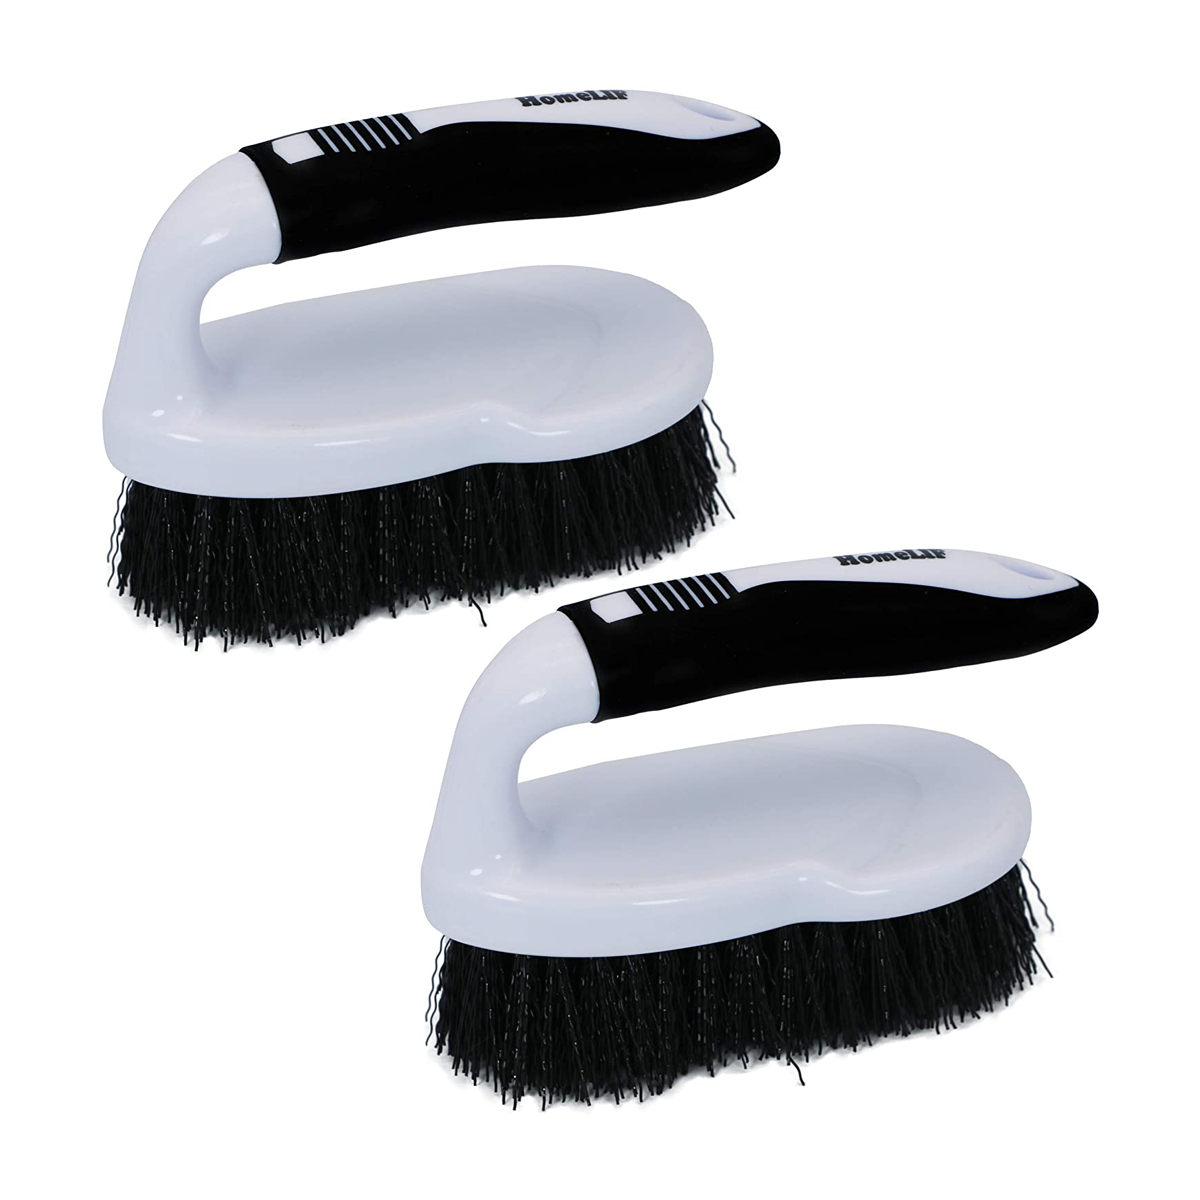 Scrub Brush Comfort Grip, Flexible, Heavy Duty, Hard Stiff Bristles, Cleaning Brush for Bathroom, Shower, Sink, Floor, Surfaces Tub, Tile and Grout All Purpose